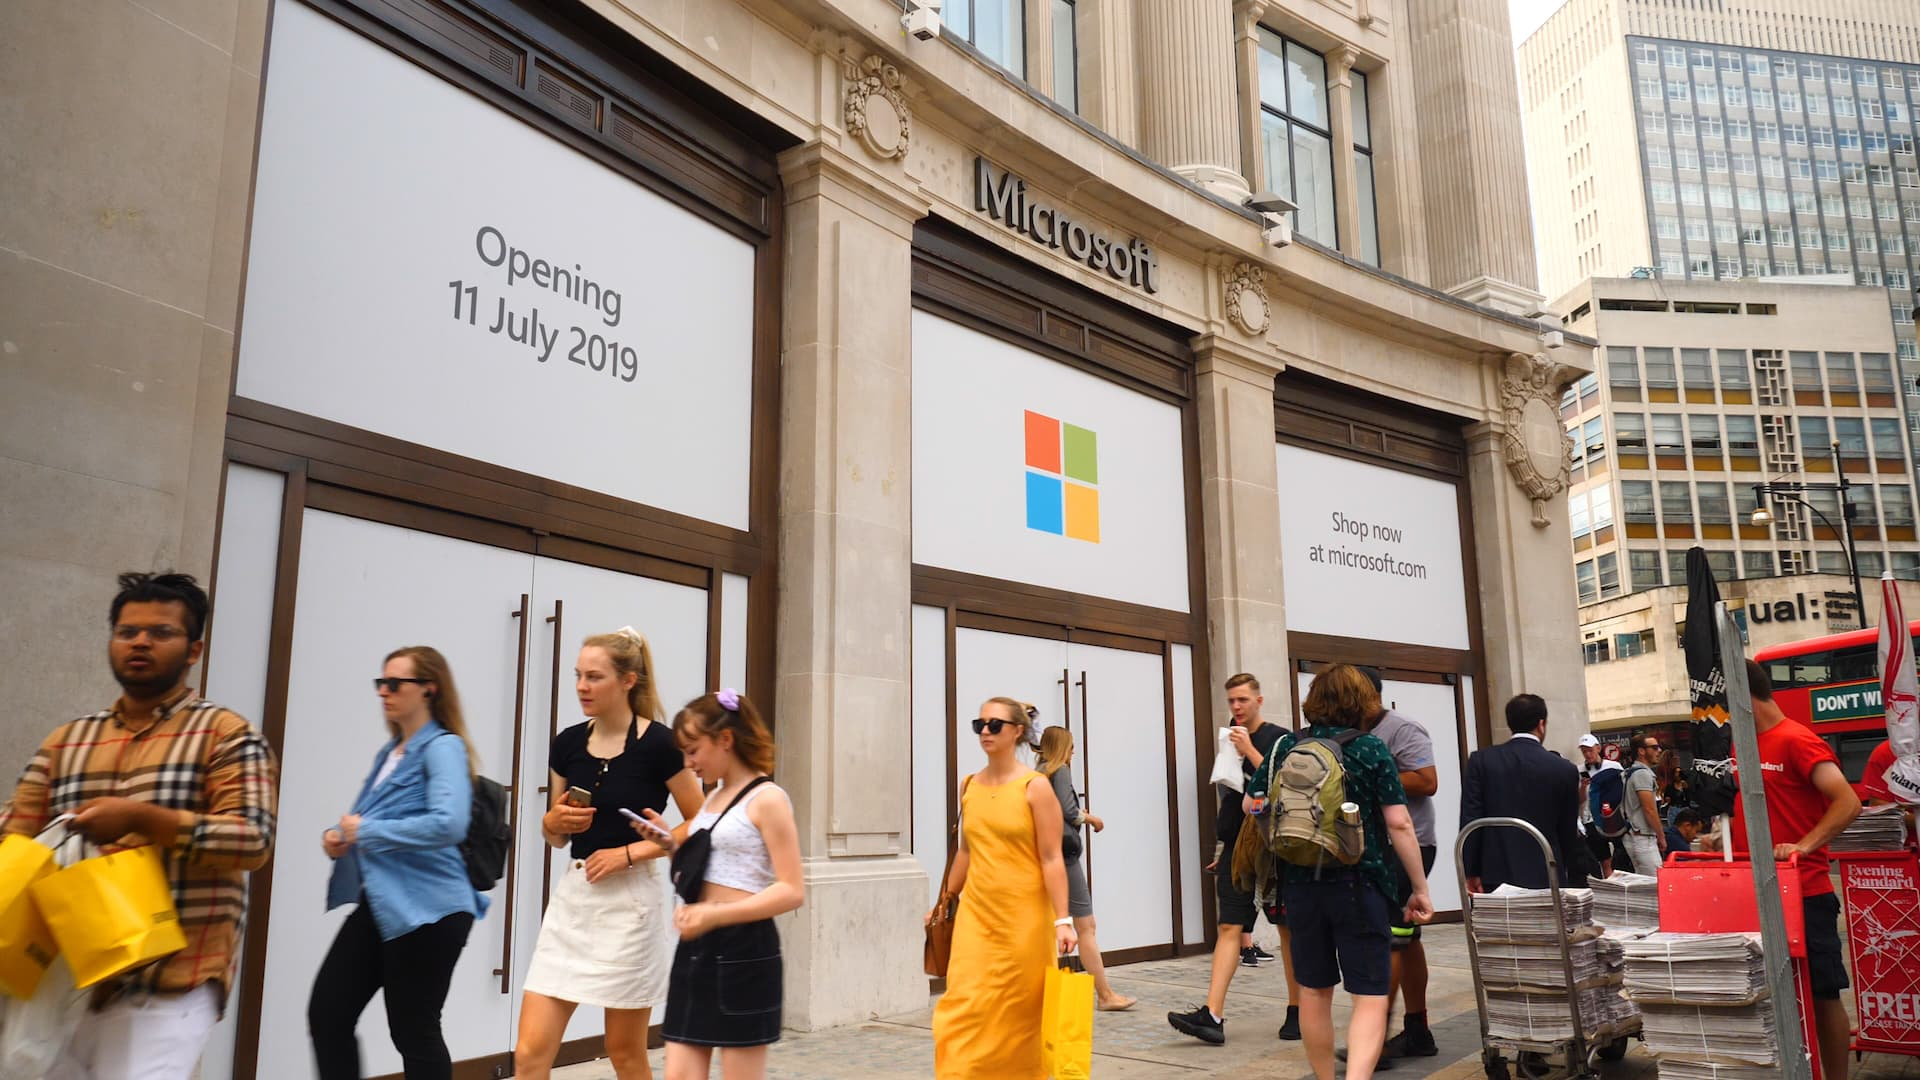 Microsoft opens first retail store in Europe – just down the street from Apple